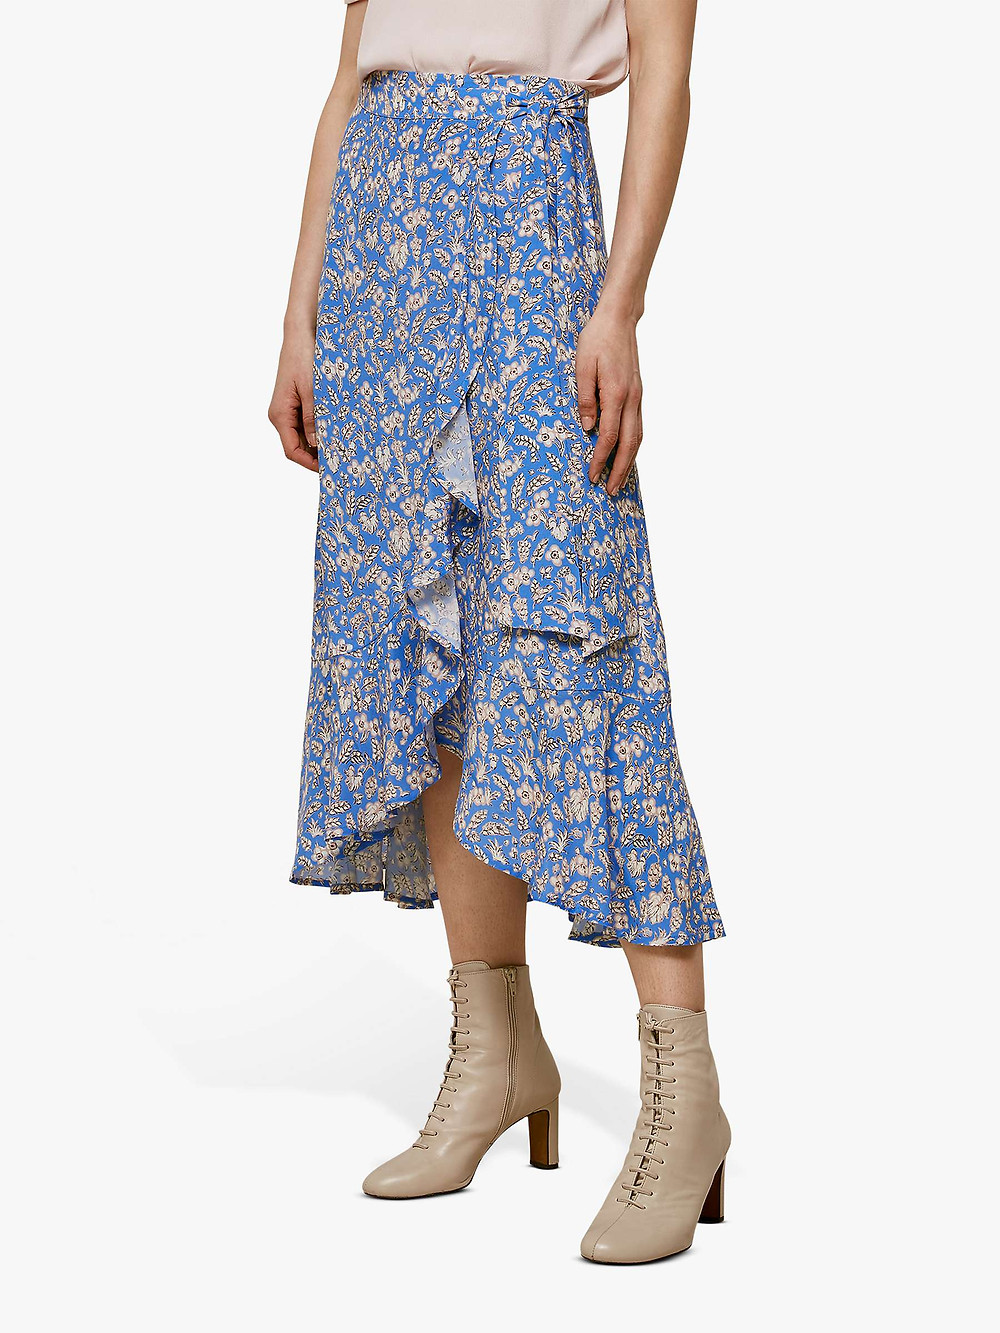 Whistles floral skirt in a flamingo style